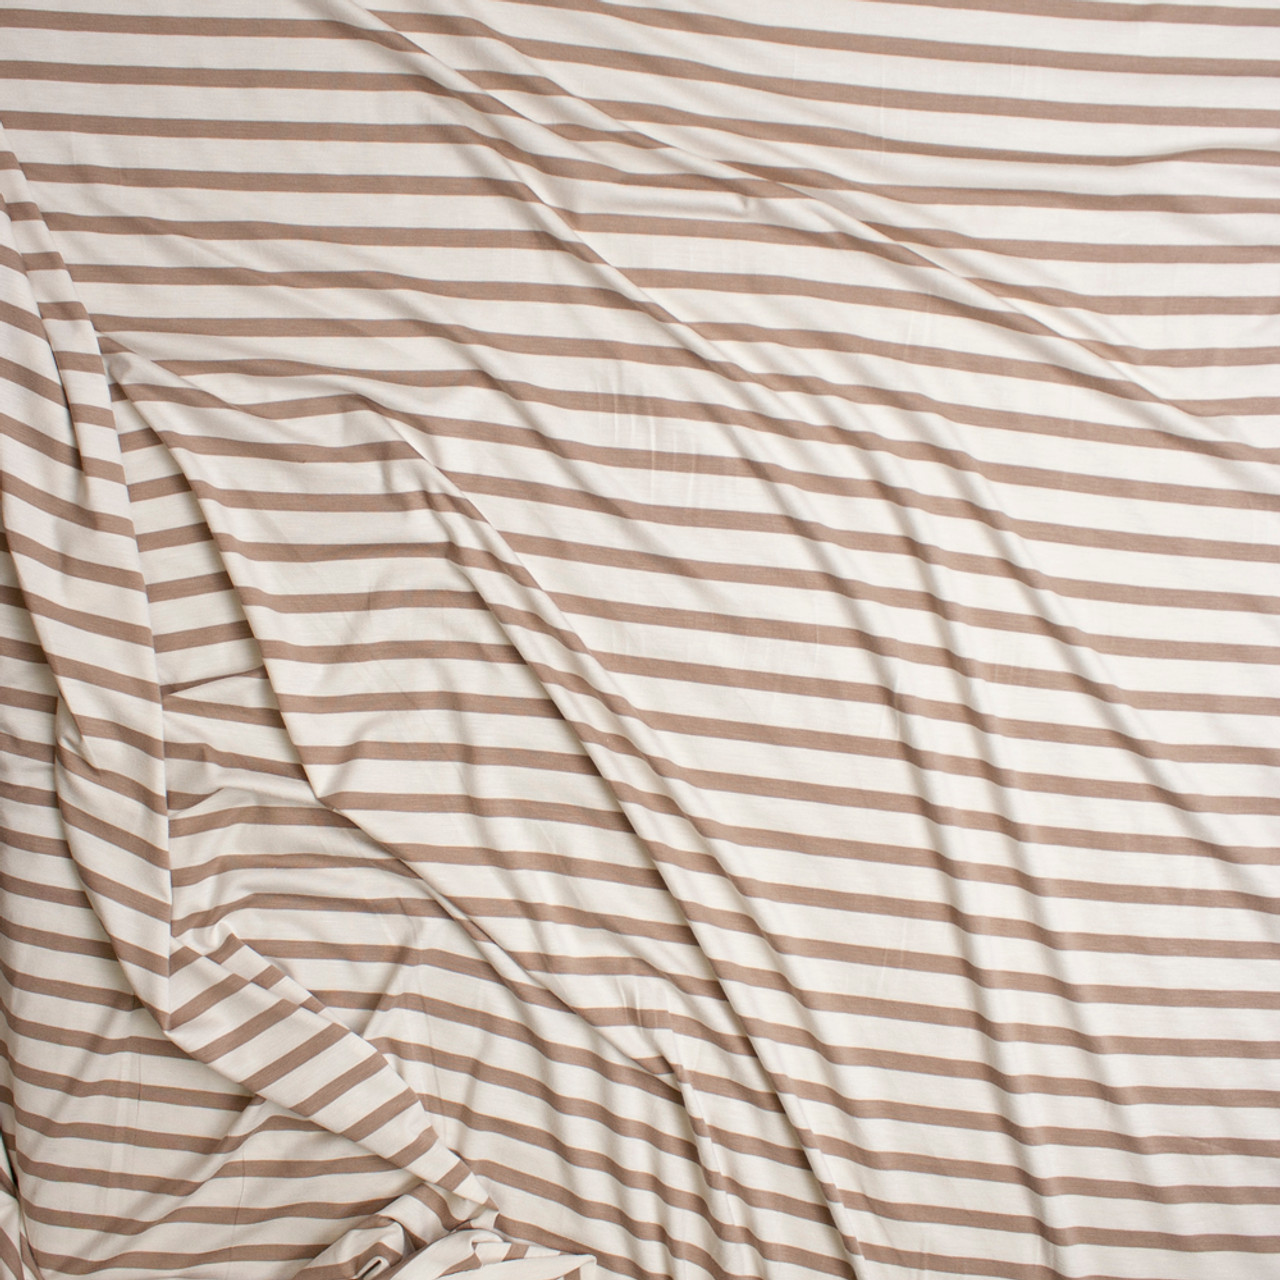 61e25dea7e9 ... Ivory and Tan Horizontal Pencil Stripe Stretch Modal Jersey Knit Fabric  By The Yard - Wide